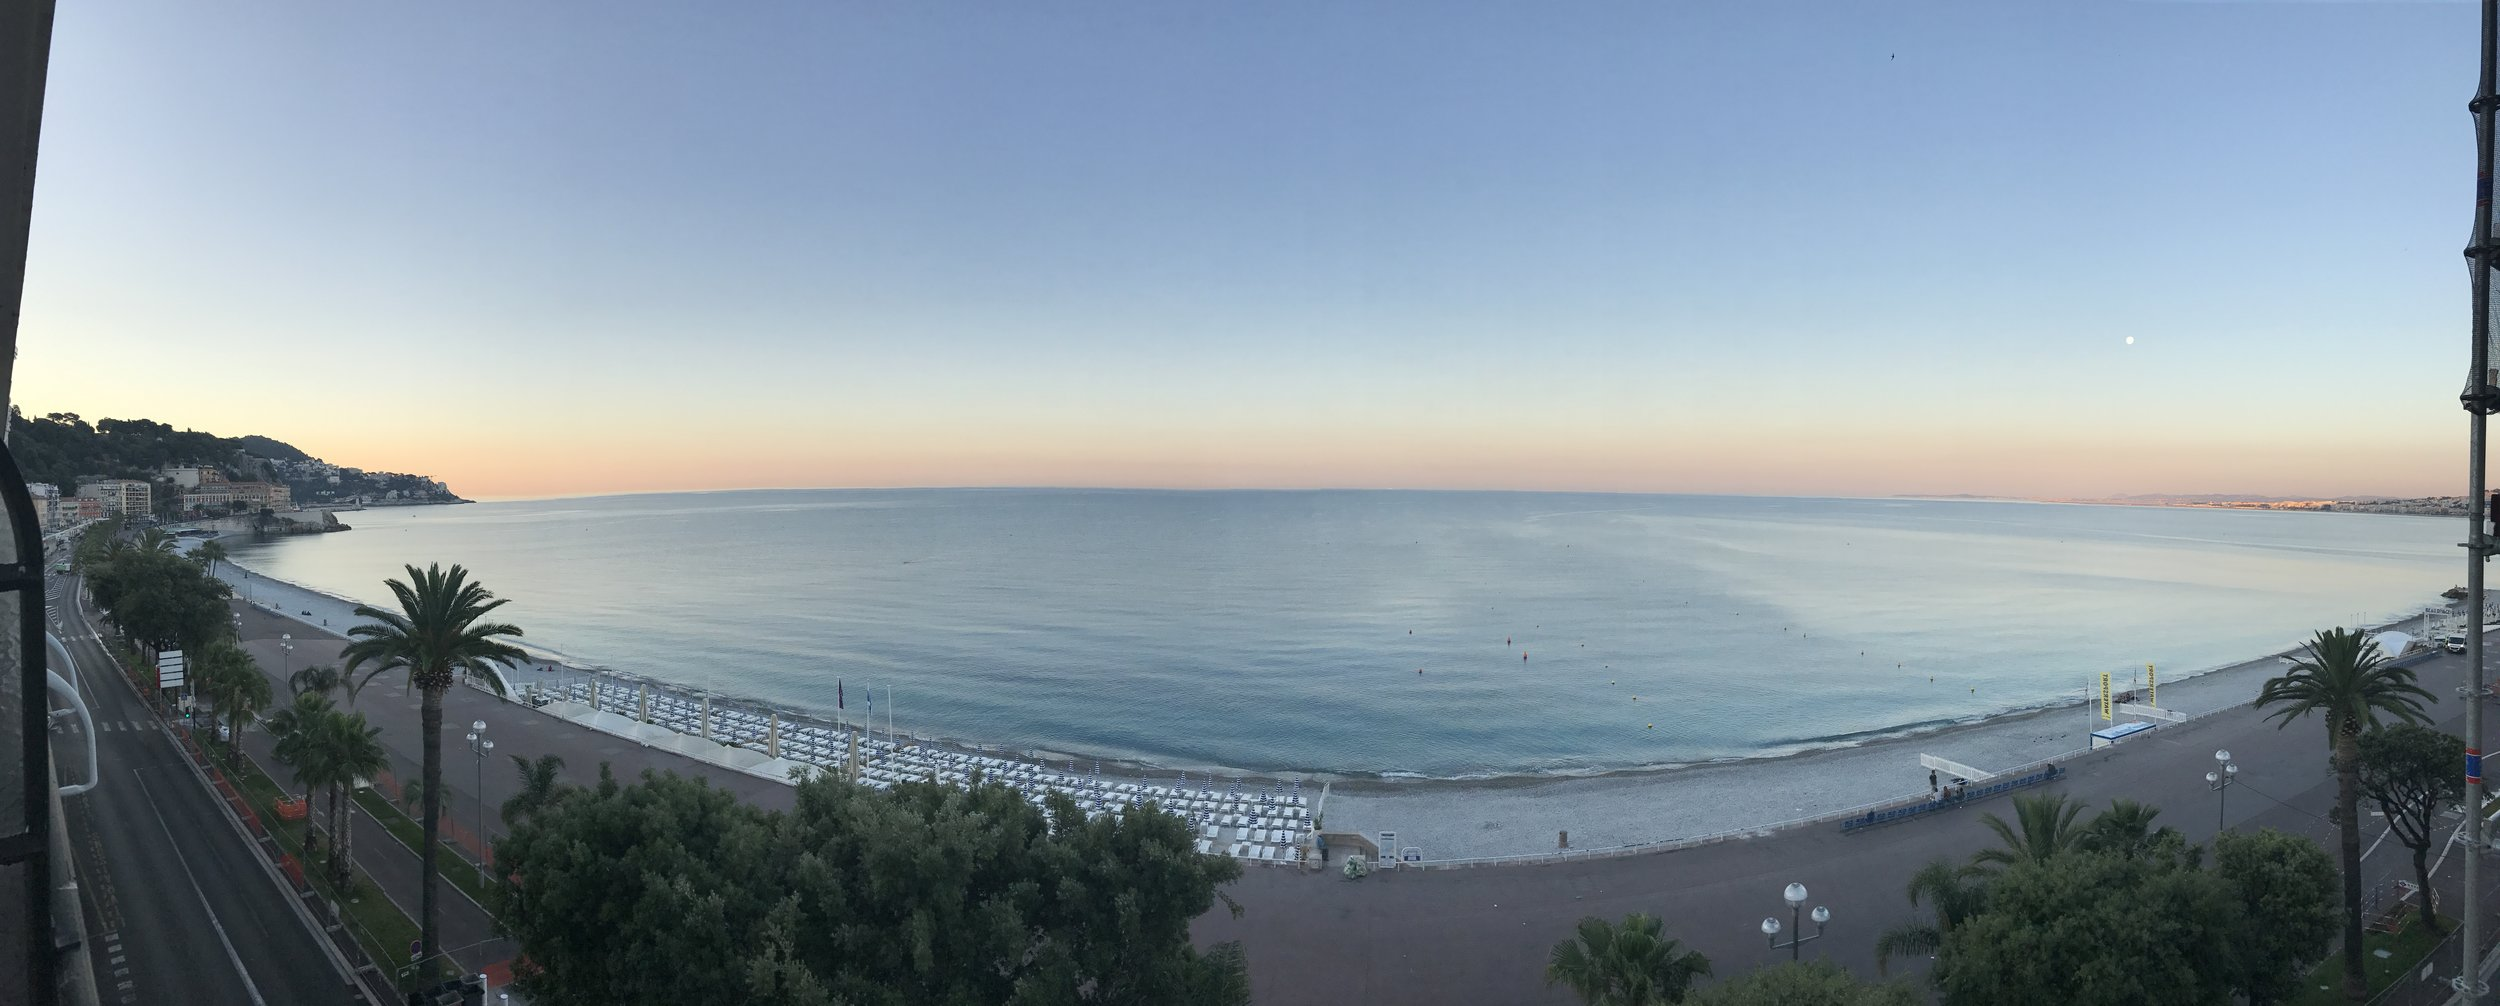 Our last morning in Nice!